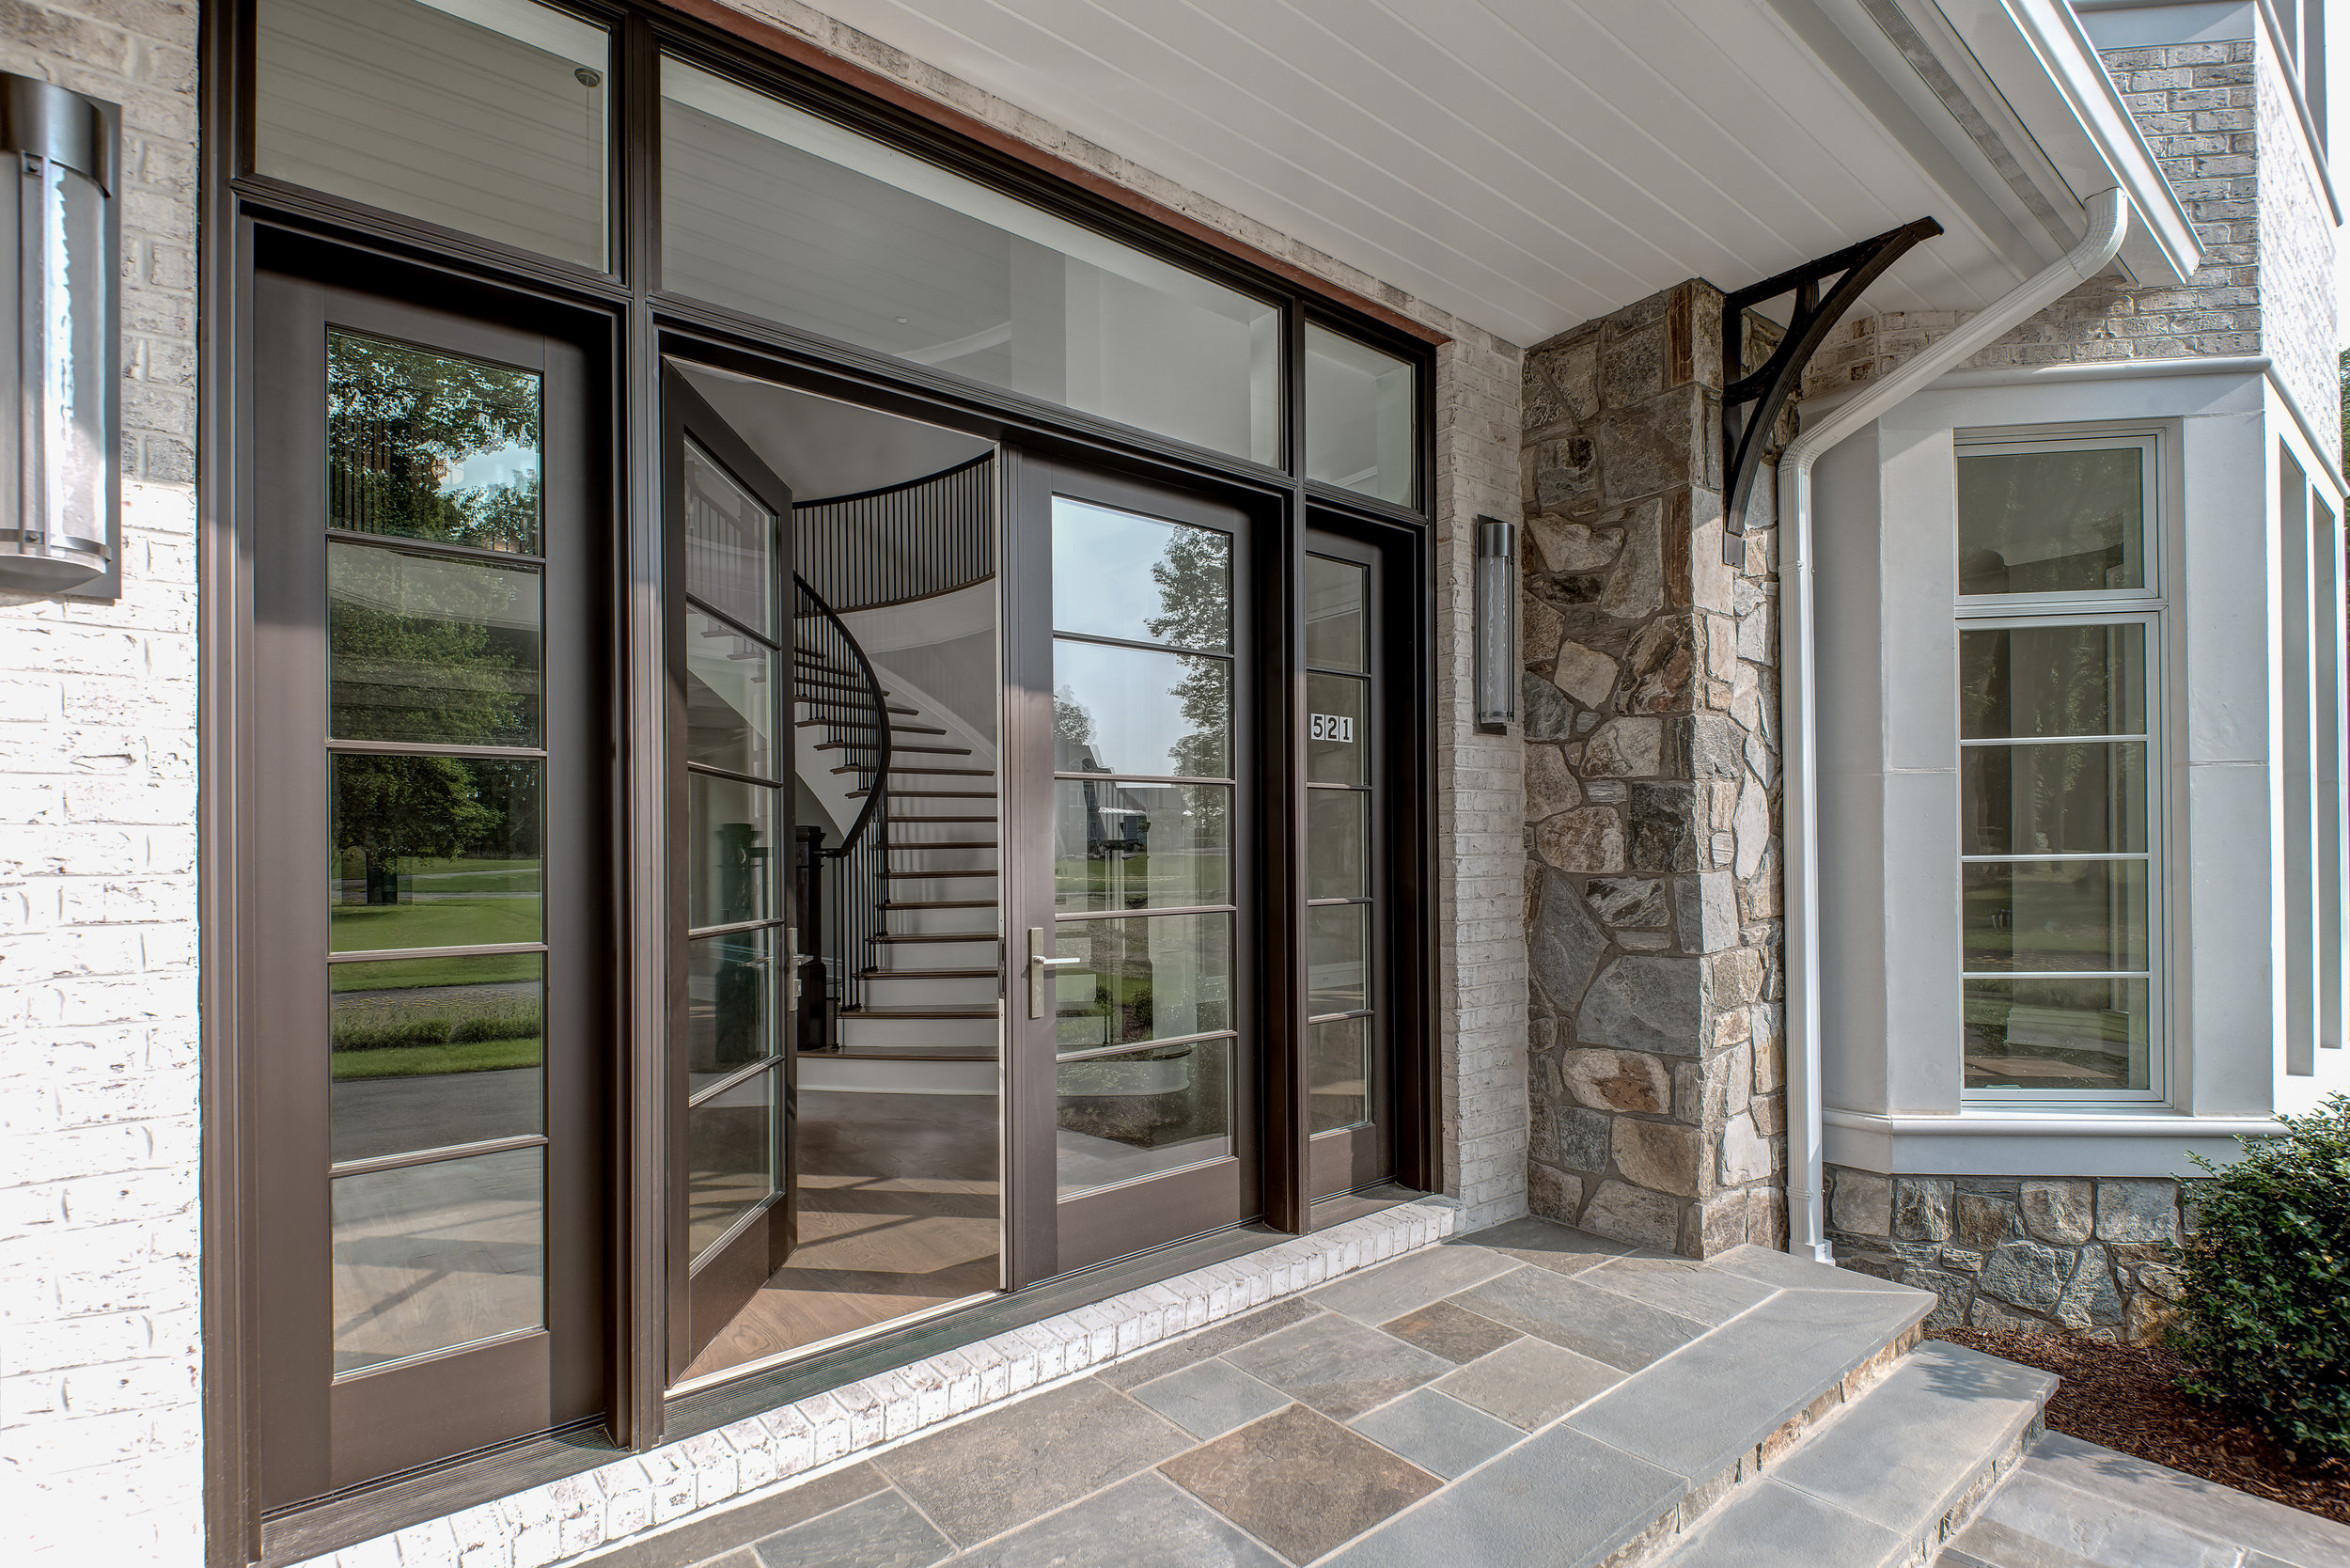 521 Haven Lane Exterior Entrance-1.jpg